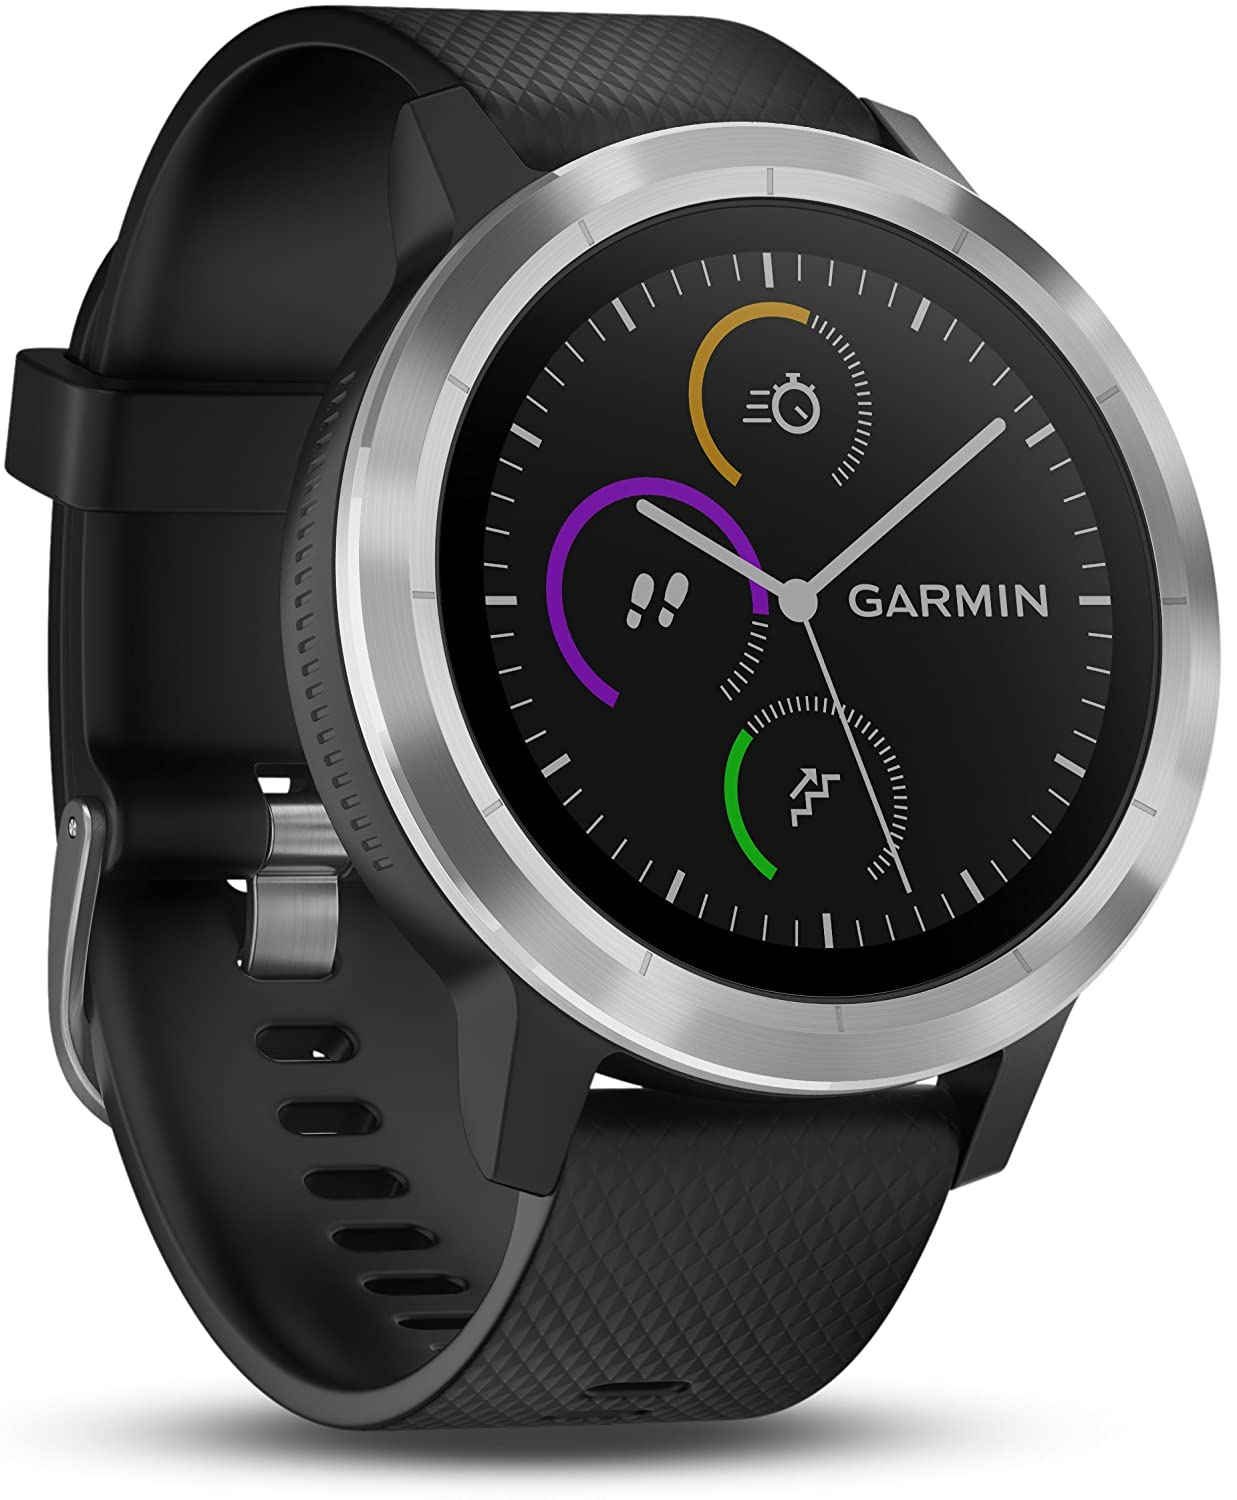 The Garmin Vivoactive 3, Functional, Smartwatches, Black, Display